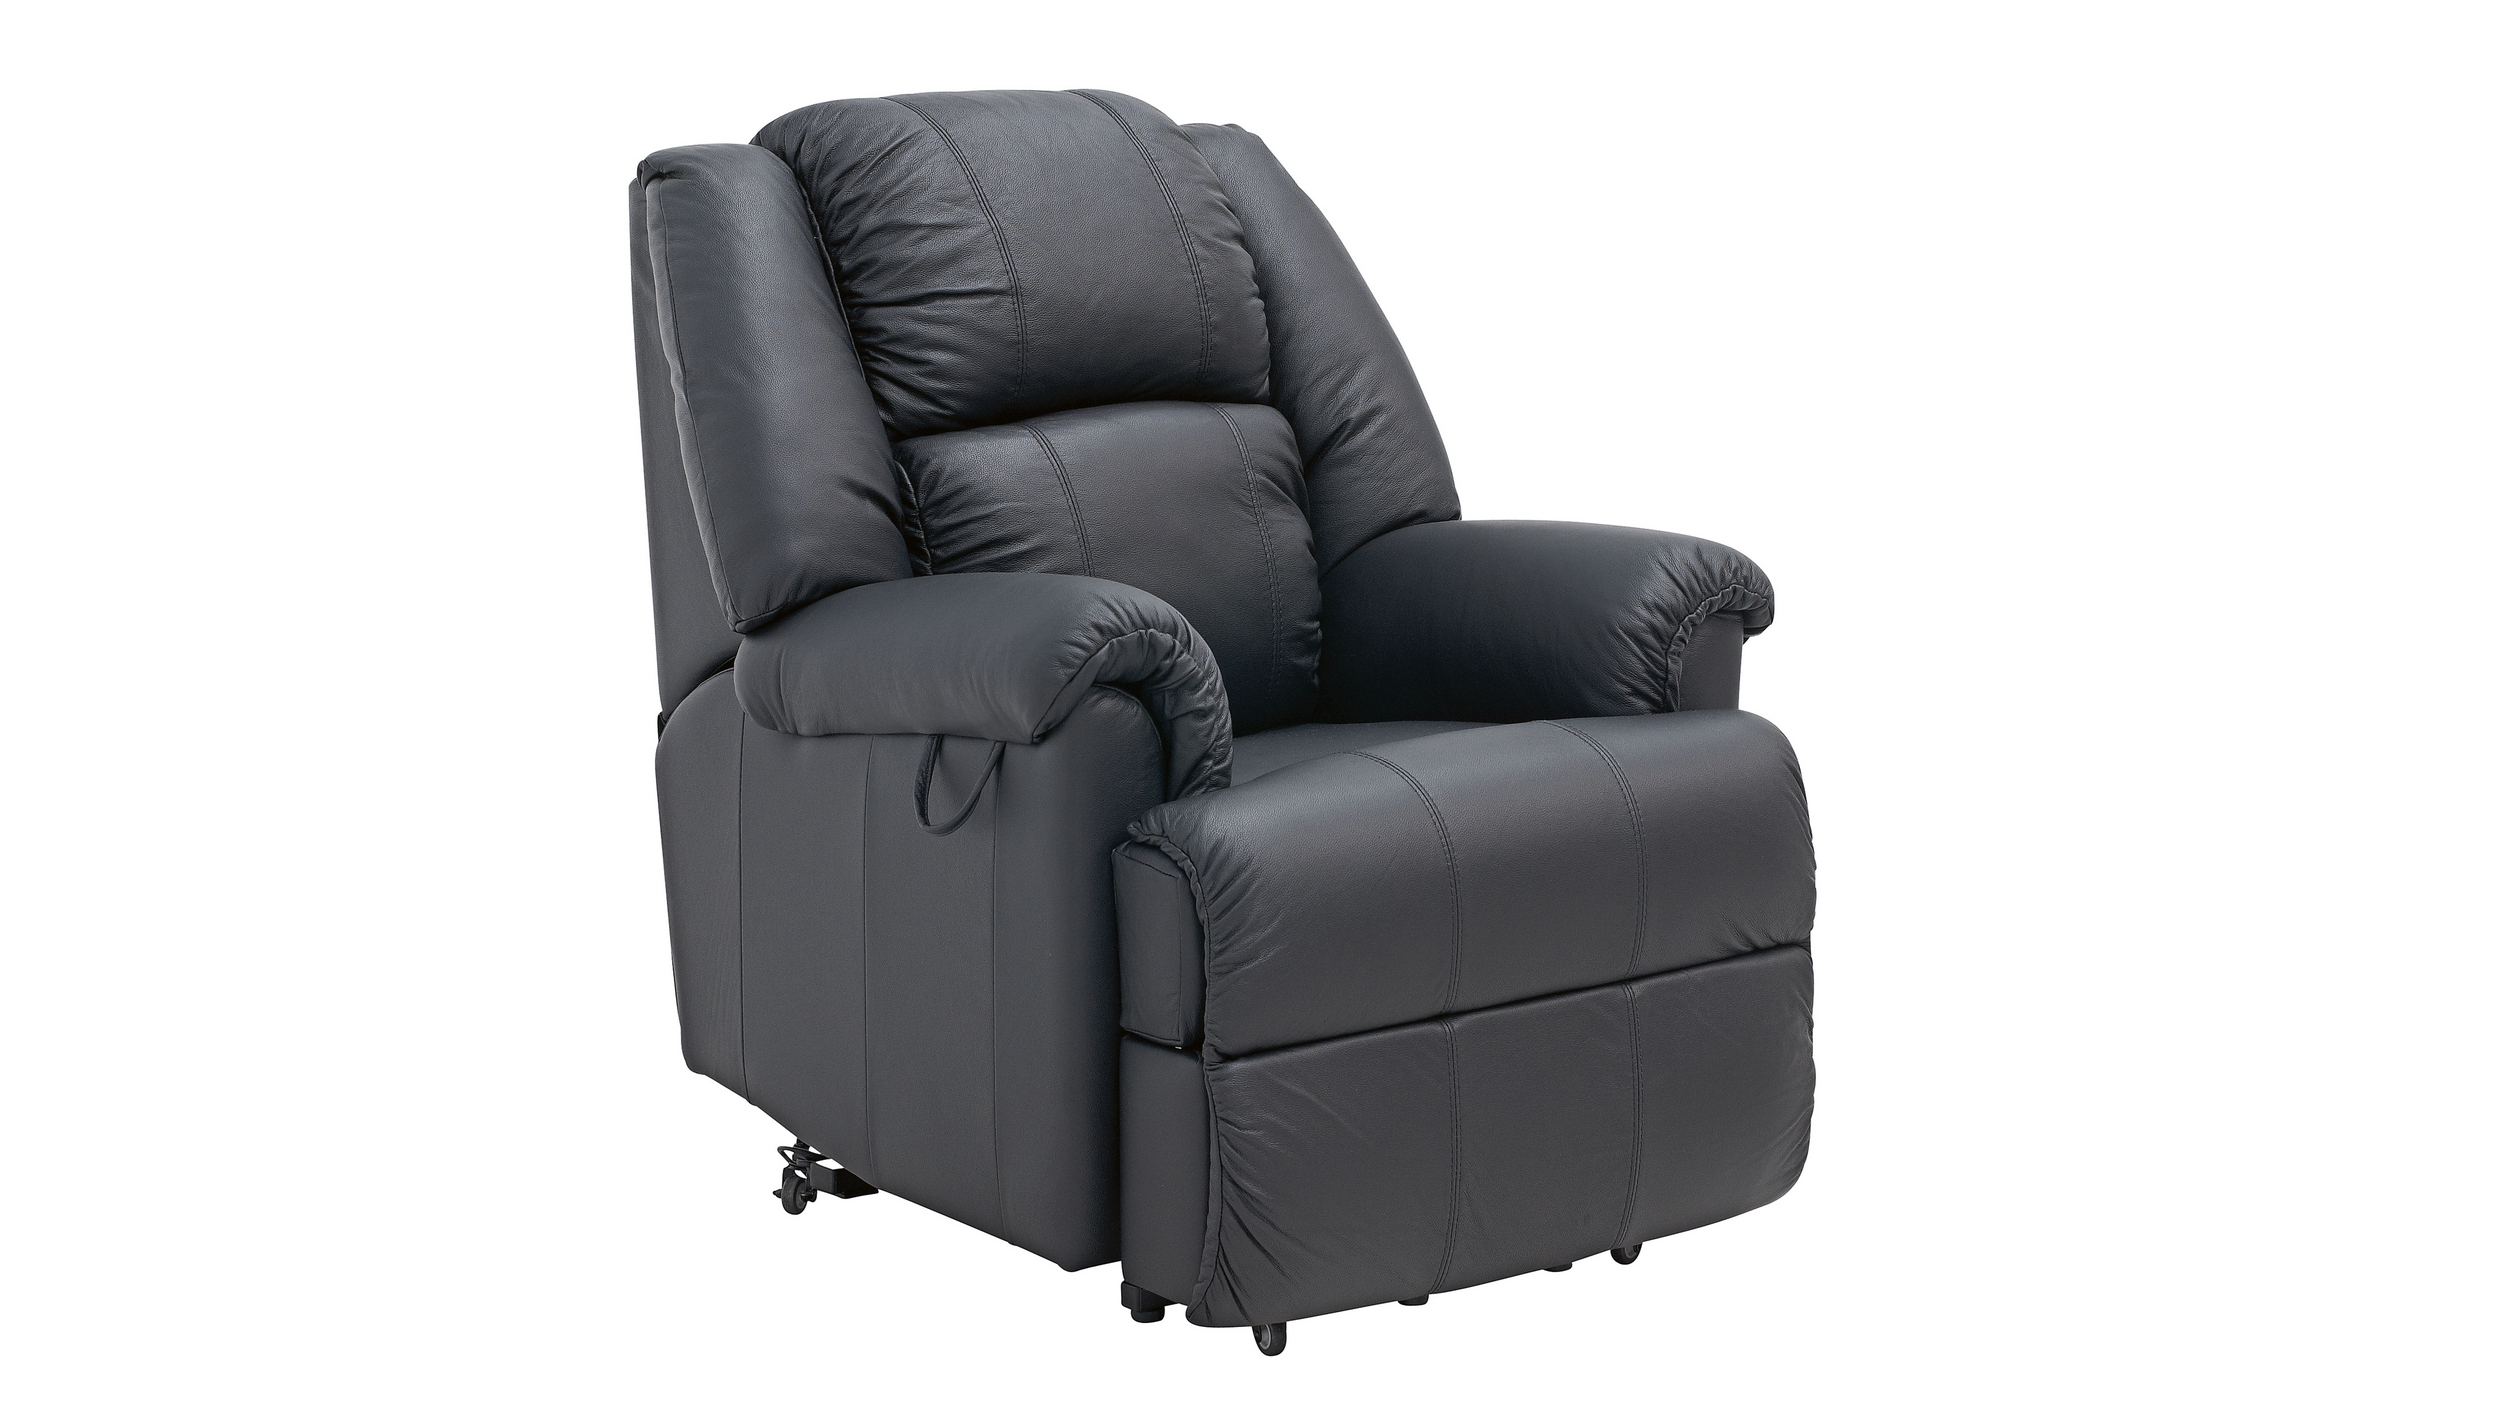 Lift Armchair Buy Ben Leather Dual Motor Lift Chair Harvey Norman Au